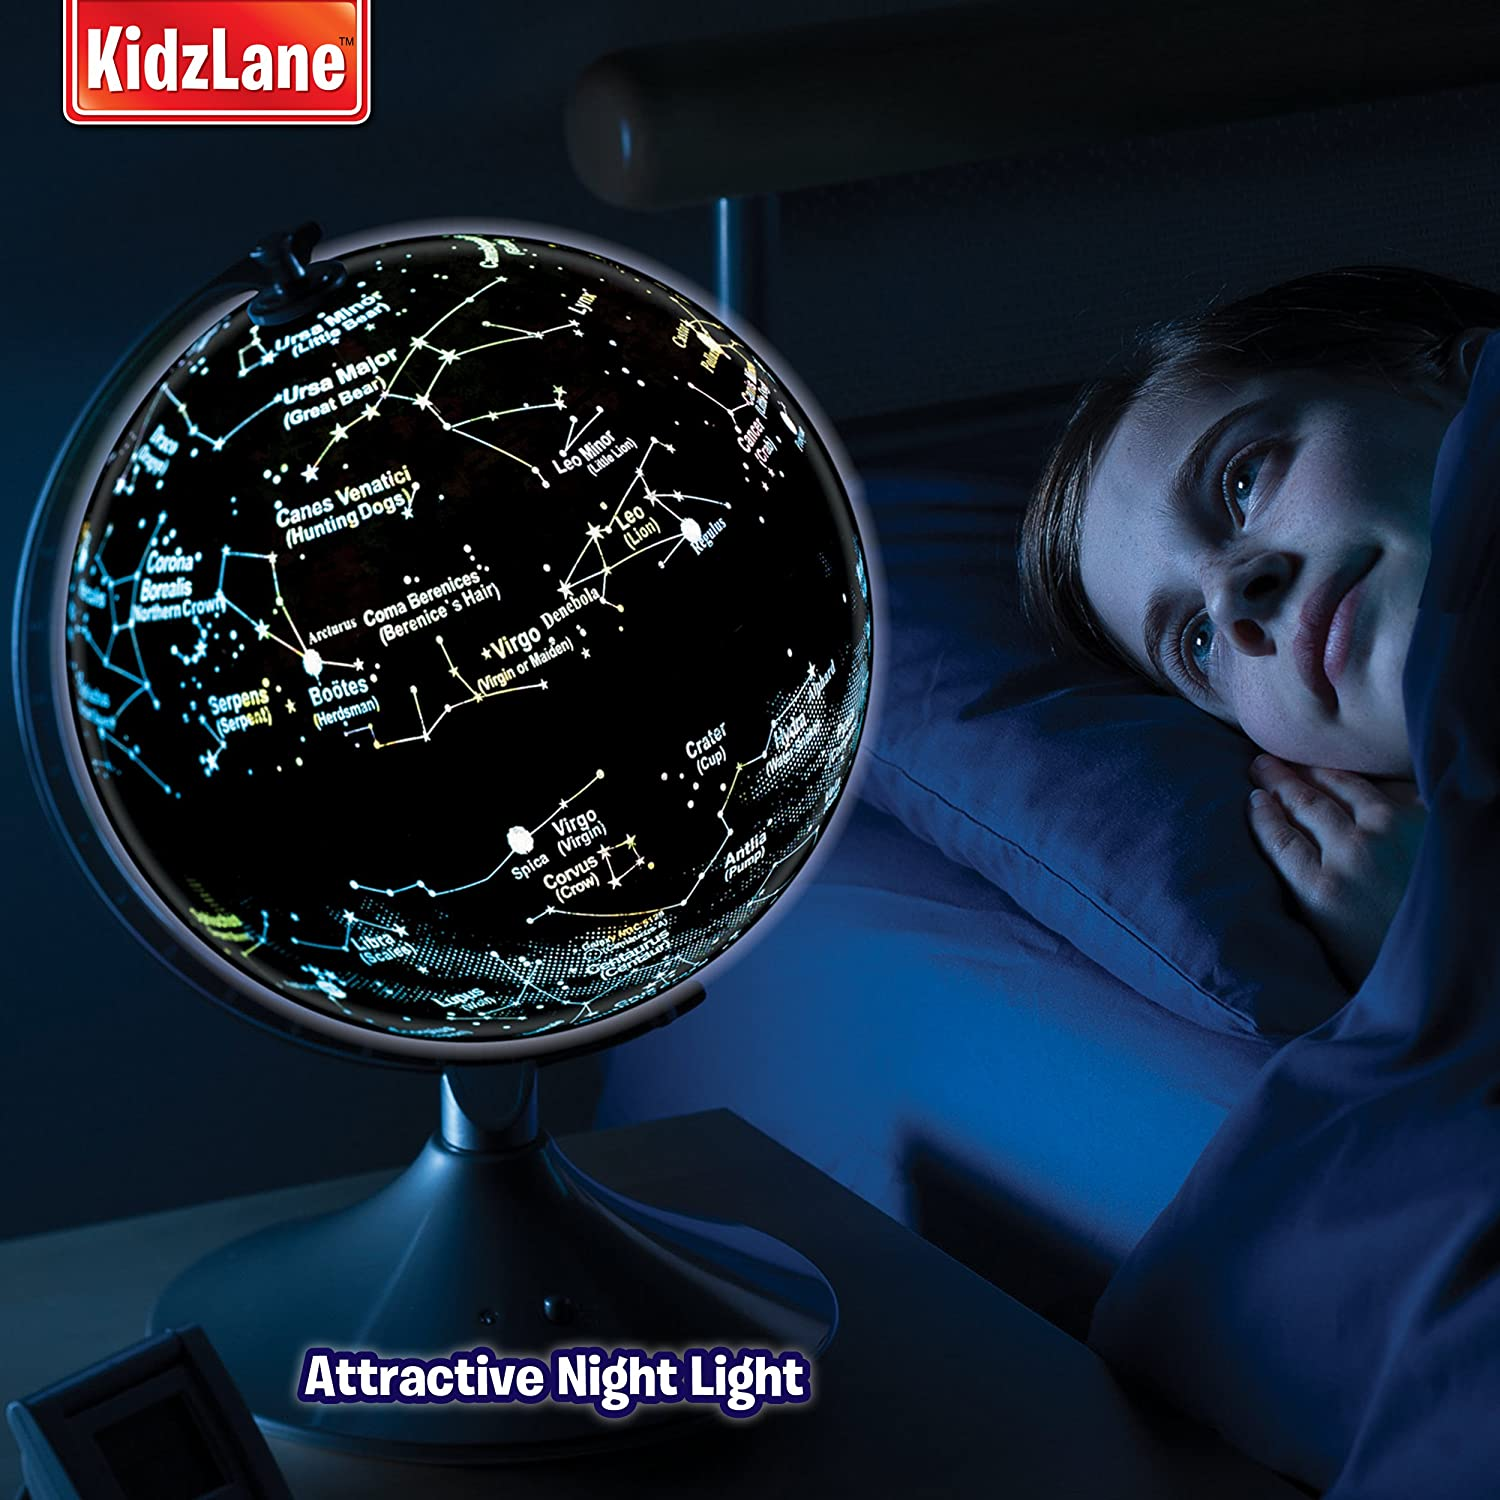 Buy interactive kids globe globe for kids world globe for kids 2 buy interactive kids globe globe for kids world globe for kids 2 in 1 globe earth and constellation online at low prices in india amazon publicscrutiny Images